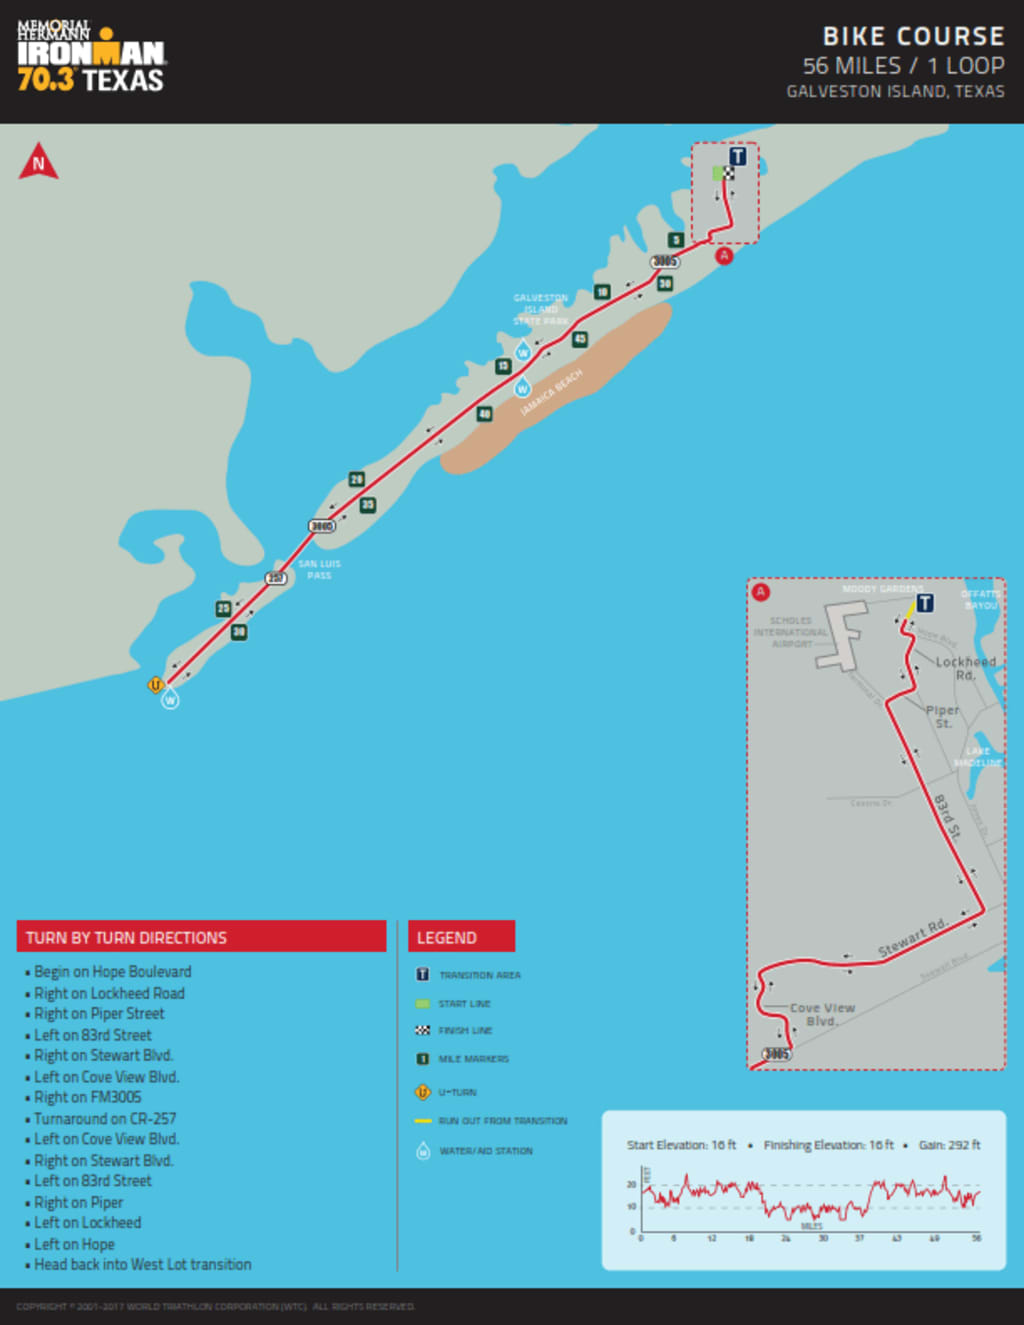 ironman-course-map-70-3-texas-bike-2017-web-1_001.png